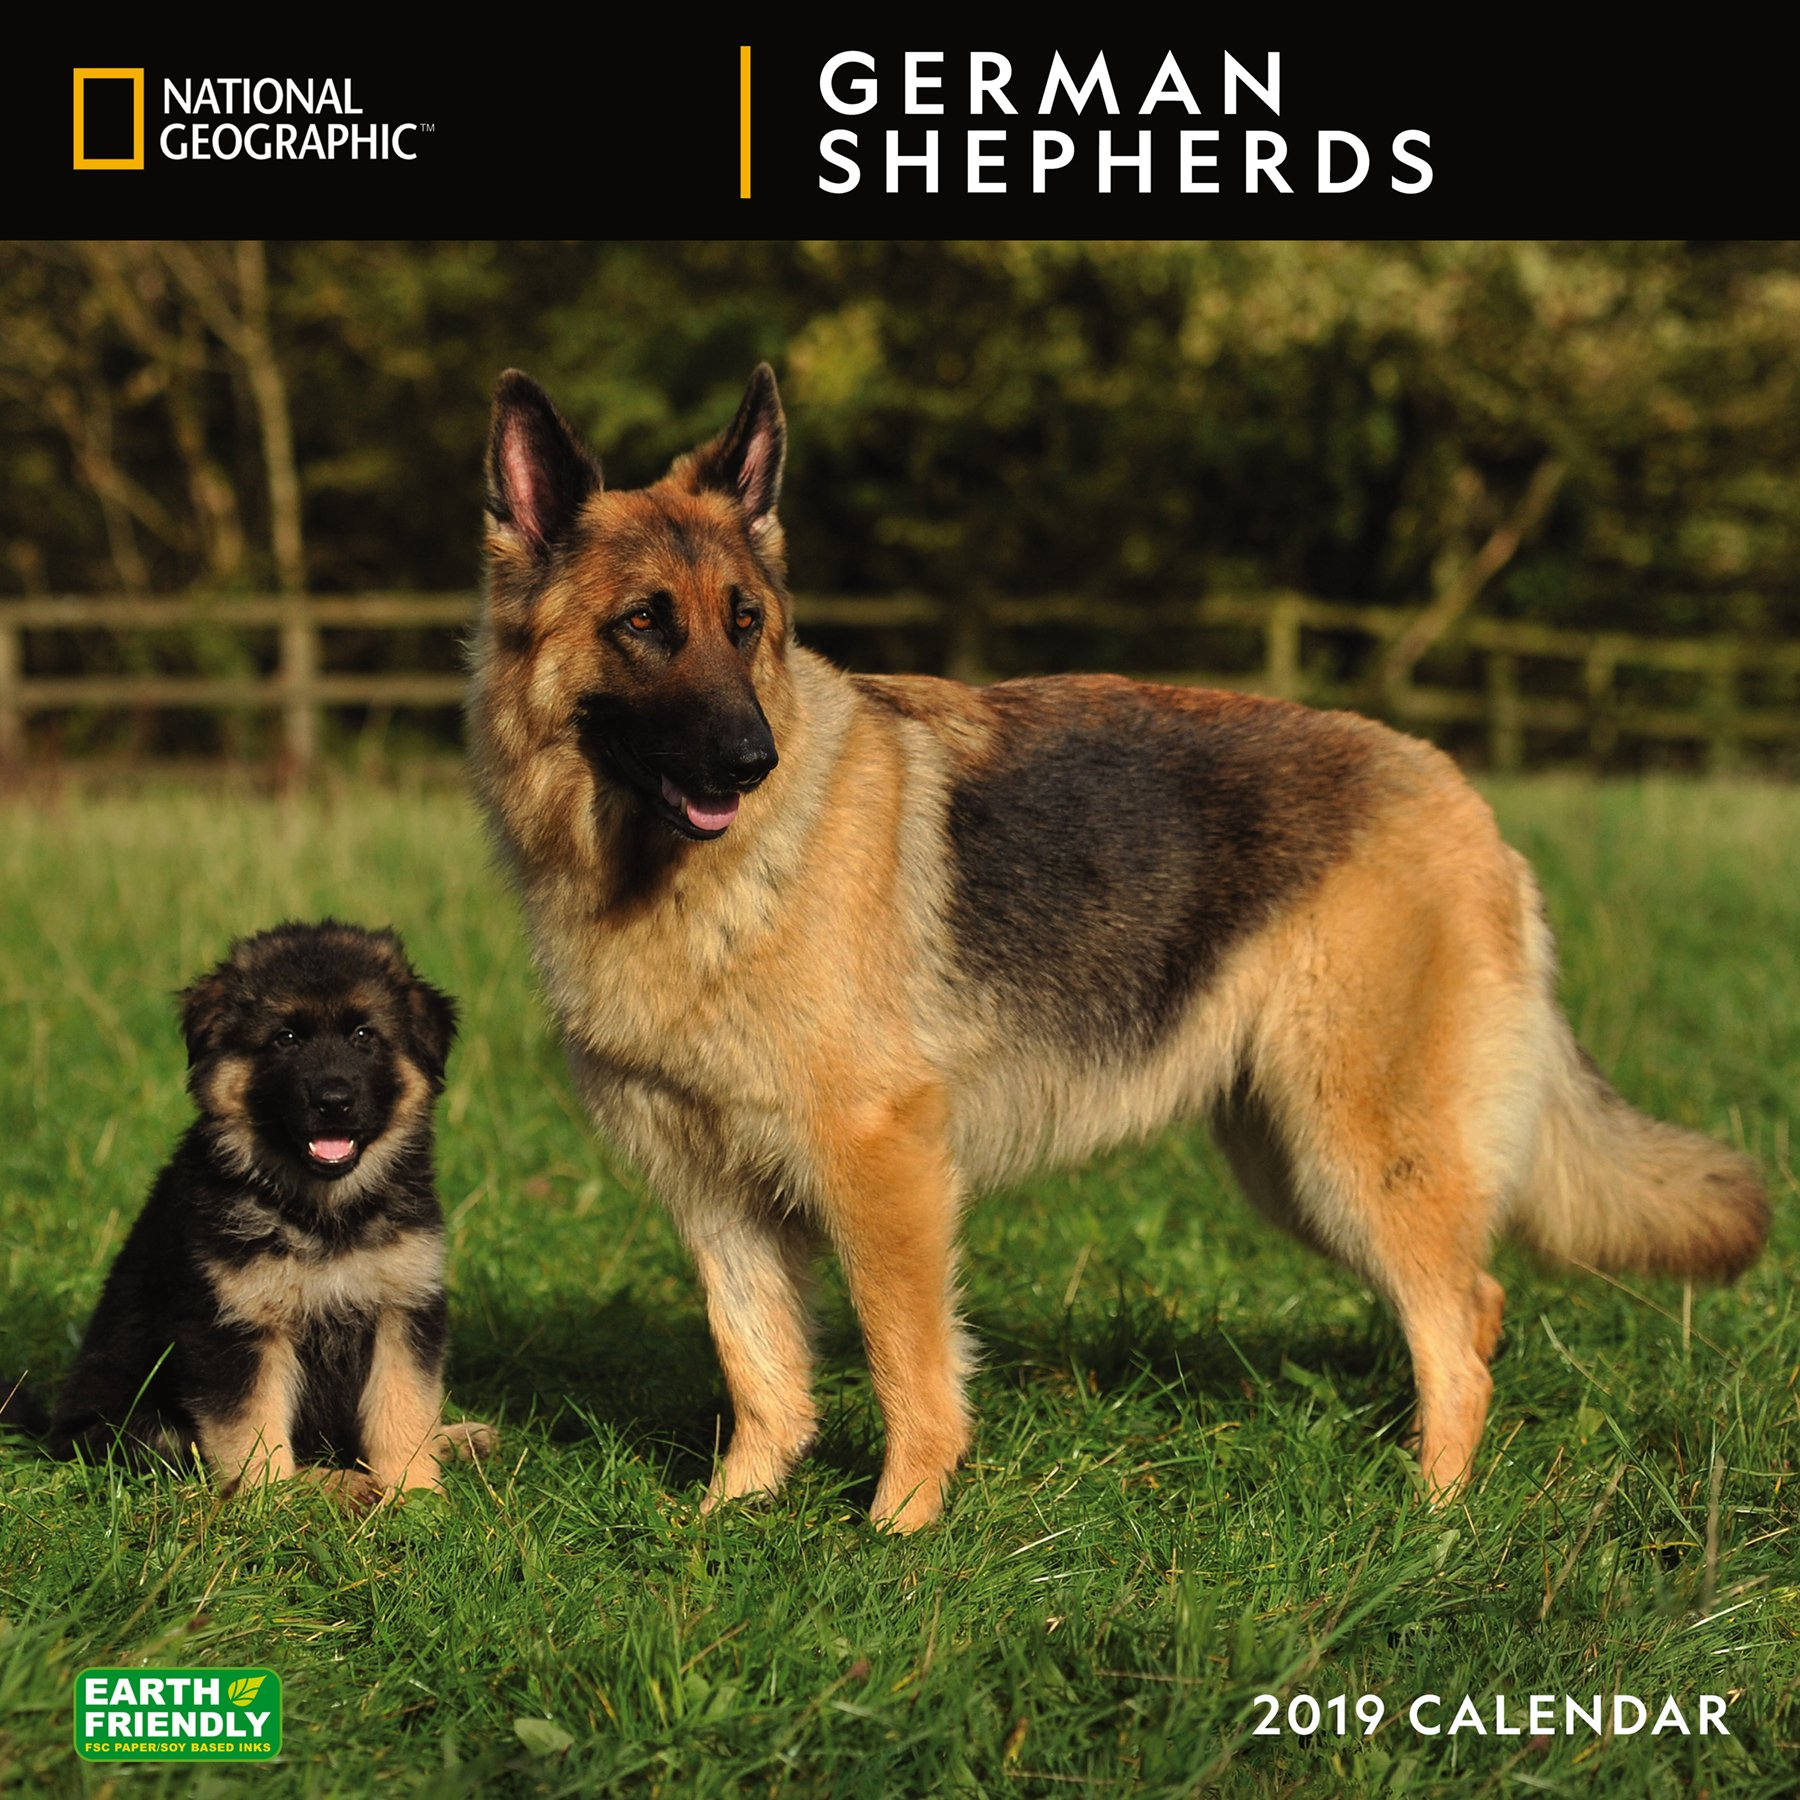 national geographic german shepherds 2019 wall calendar